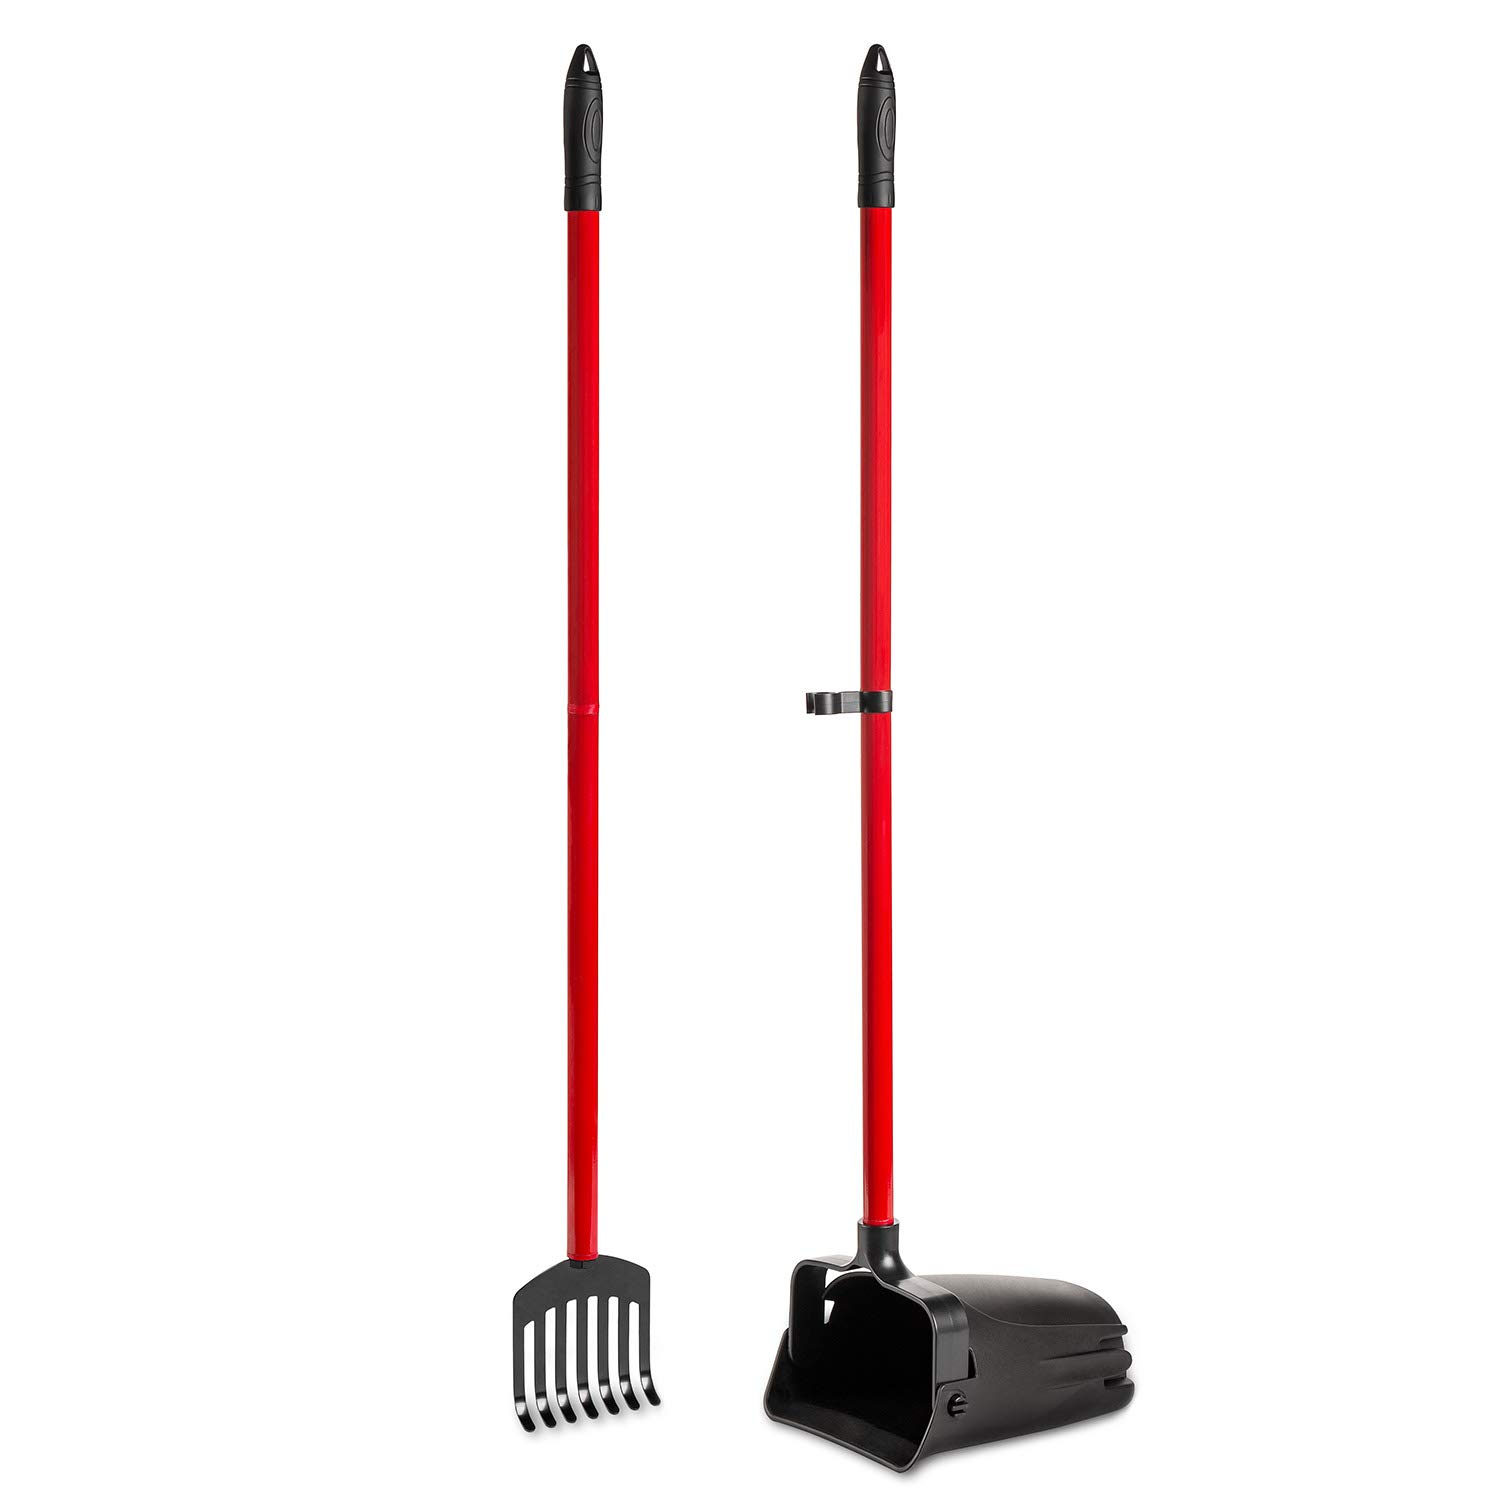 Pikaon Heavy Duty Scooper with Swivel Bin and Metal Rake for Pet Waste by Pikaon